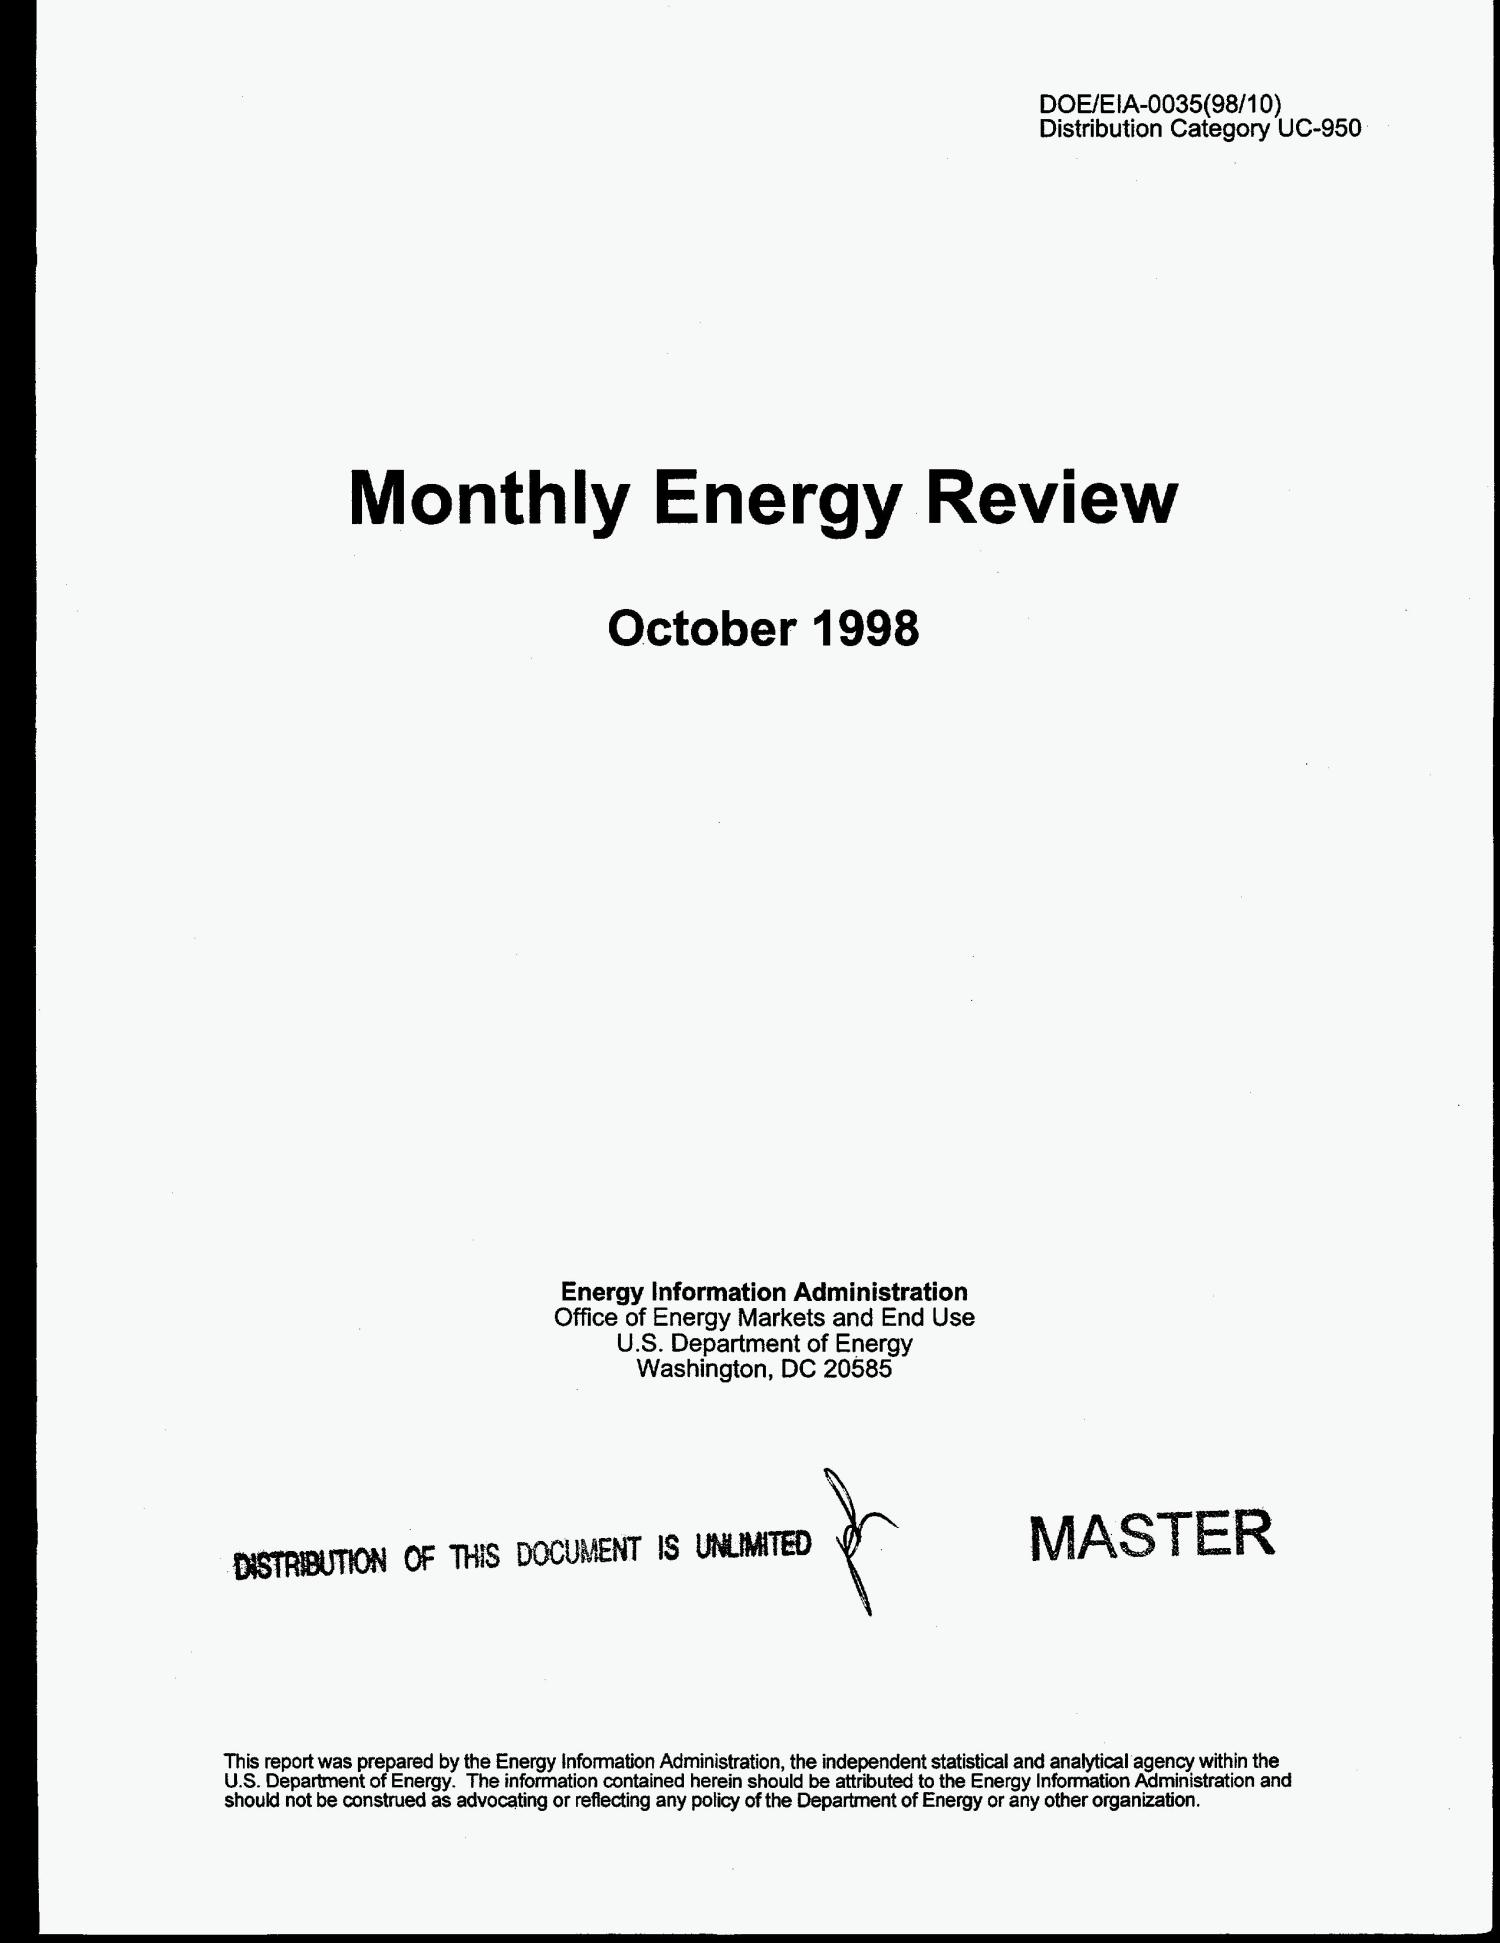 Monthly energy review, October 1998                                                                                                      [Sequence #]: 1 of 192